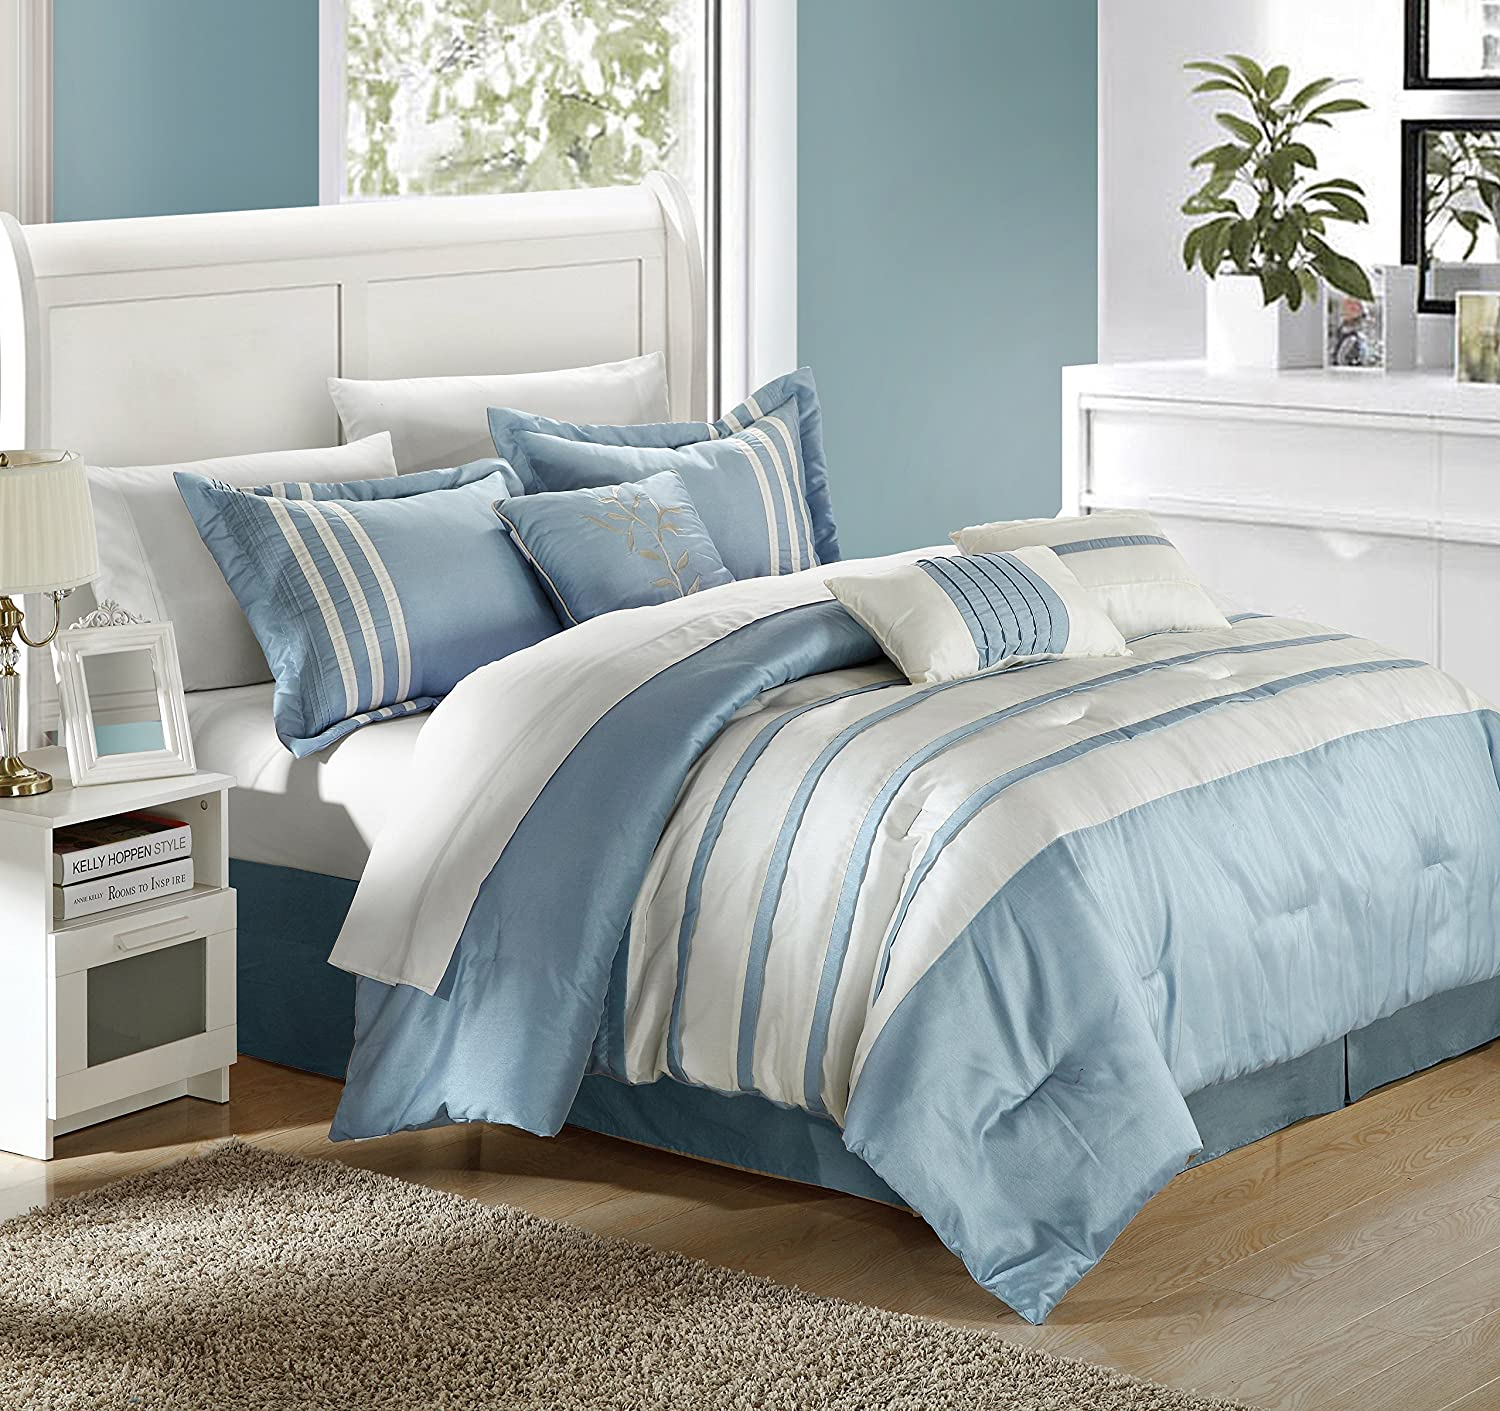 Luxury Bedding Collection 7-Piece Comforter Set, Queen, Blue